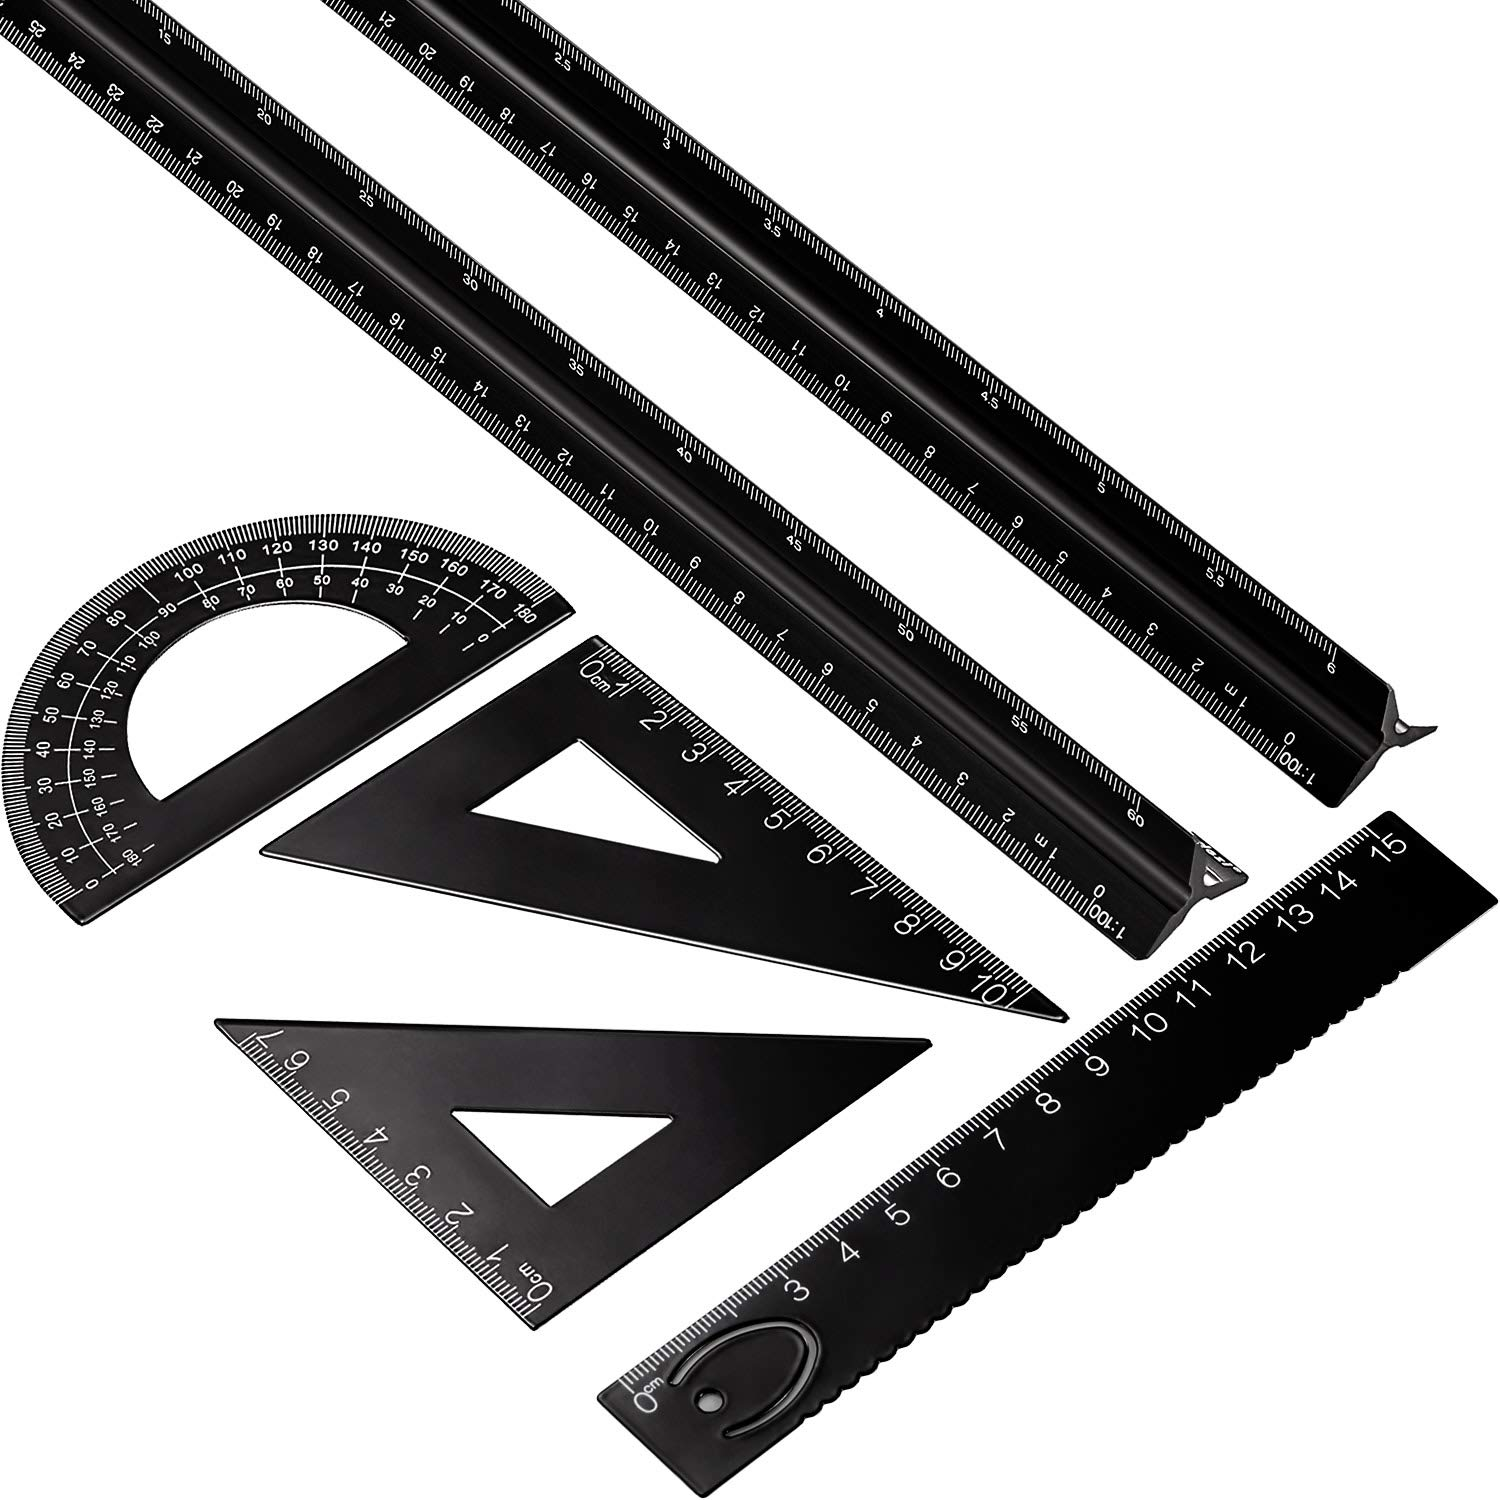 Leinuosen 6 Pieces Aluminum Triangular Architect Scale Ruler Set, 2 Pack 12 Inch Aluminum Scale Ruler with 4 Pieces Aluminum Triangle Ruler Square Set for Architects, Students, Draftsman and Engineers by Leinuosen (Image #1)